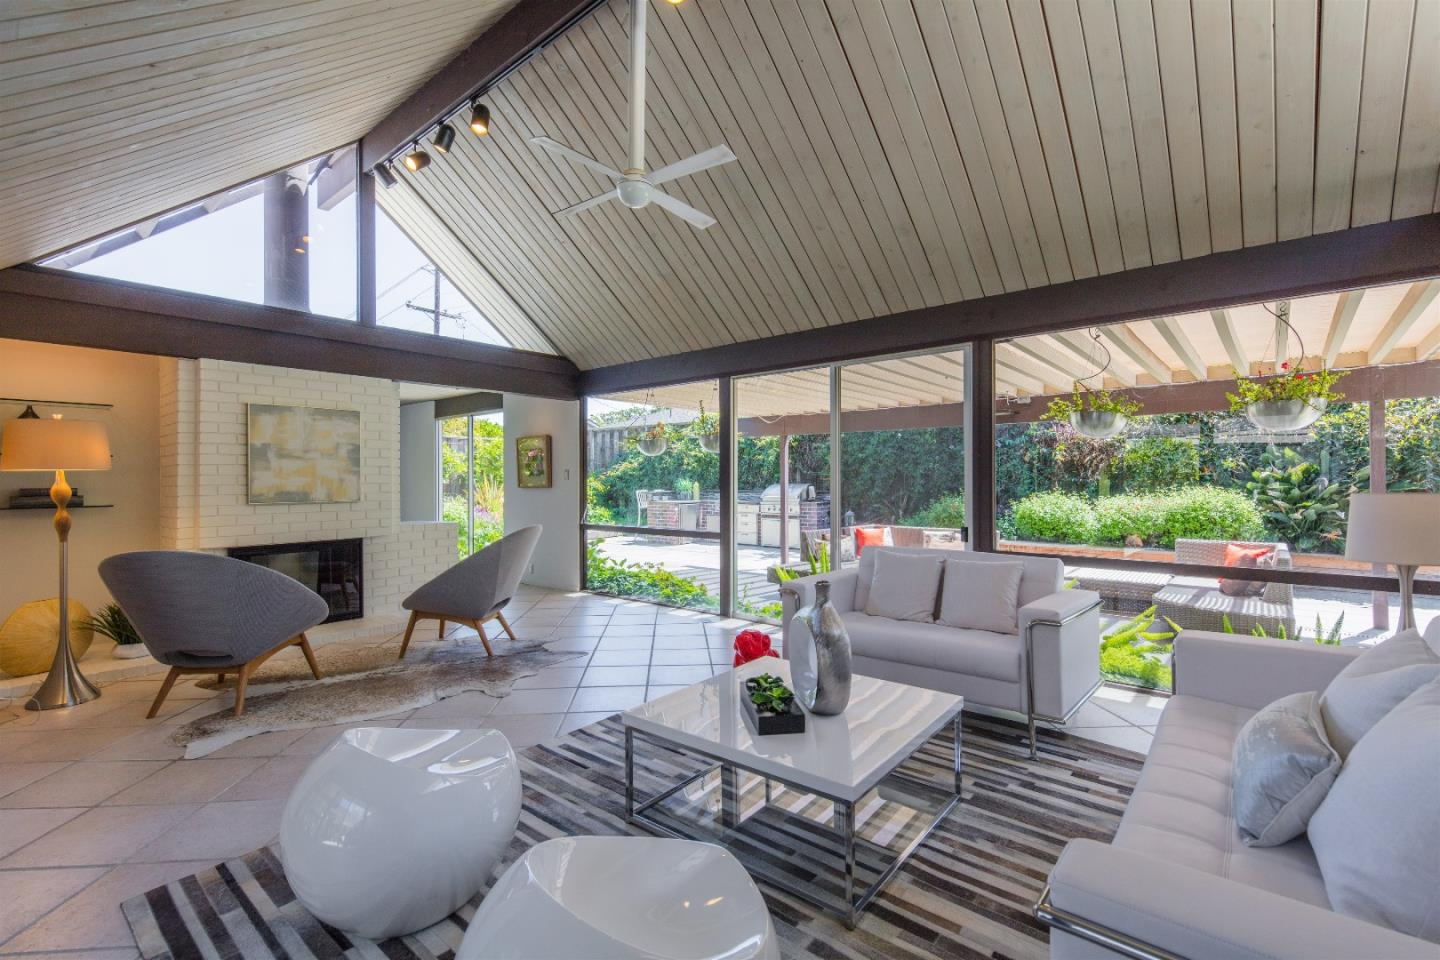 Additional photo for property listing at 816 Lennox Ct  SUNNYVALE, CALIFORNIA 94087